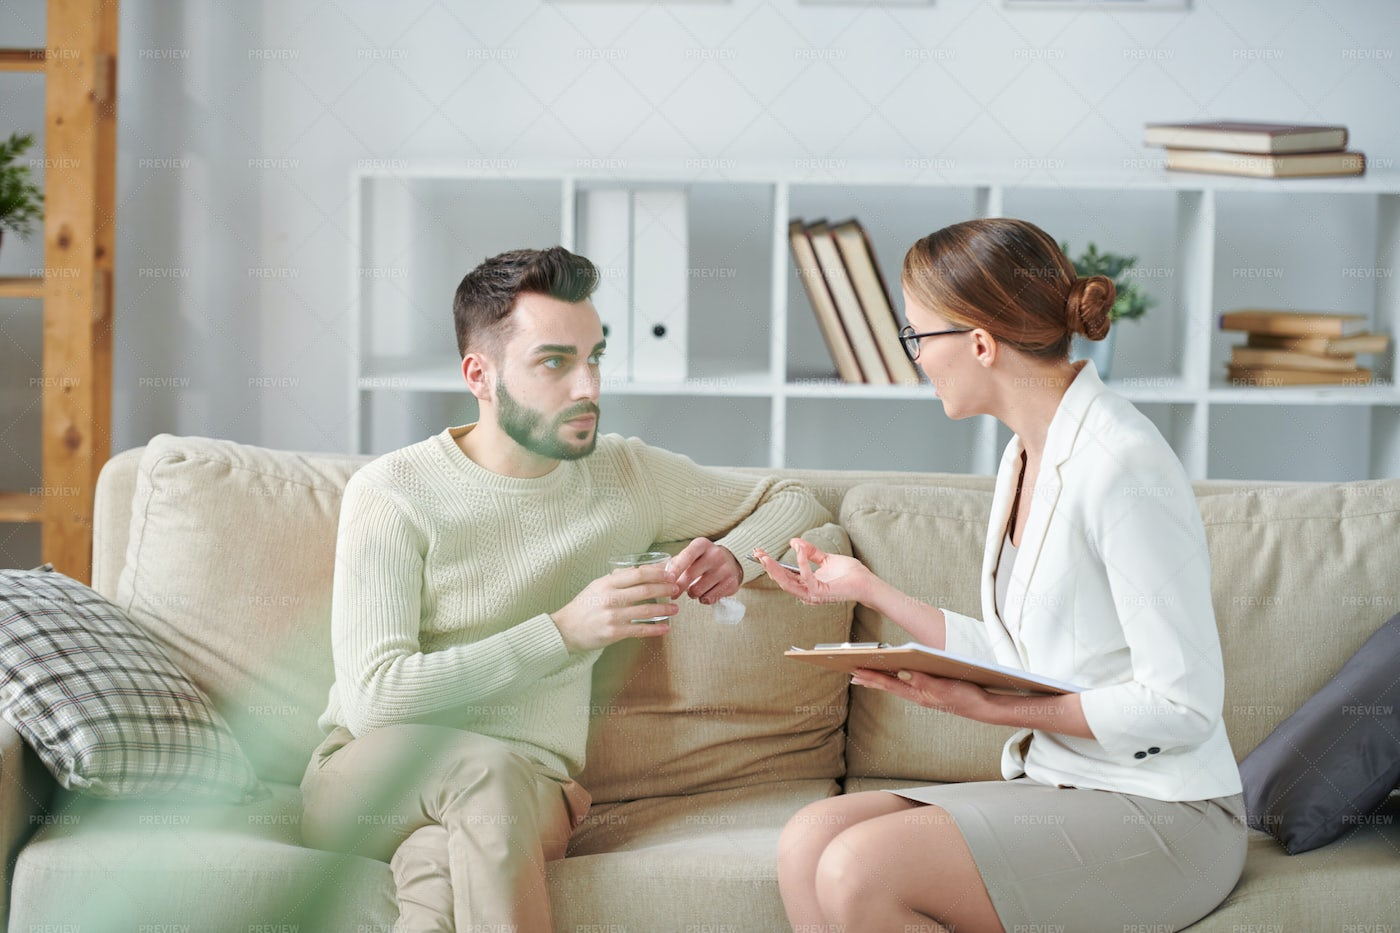 Interaction On Couch: Stock Photos